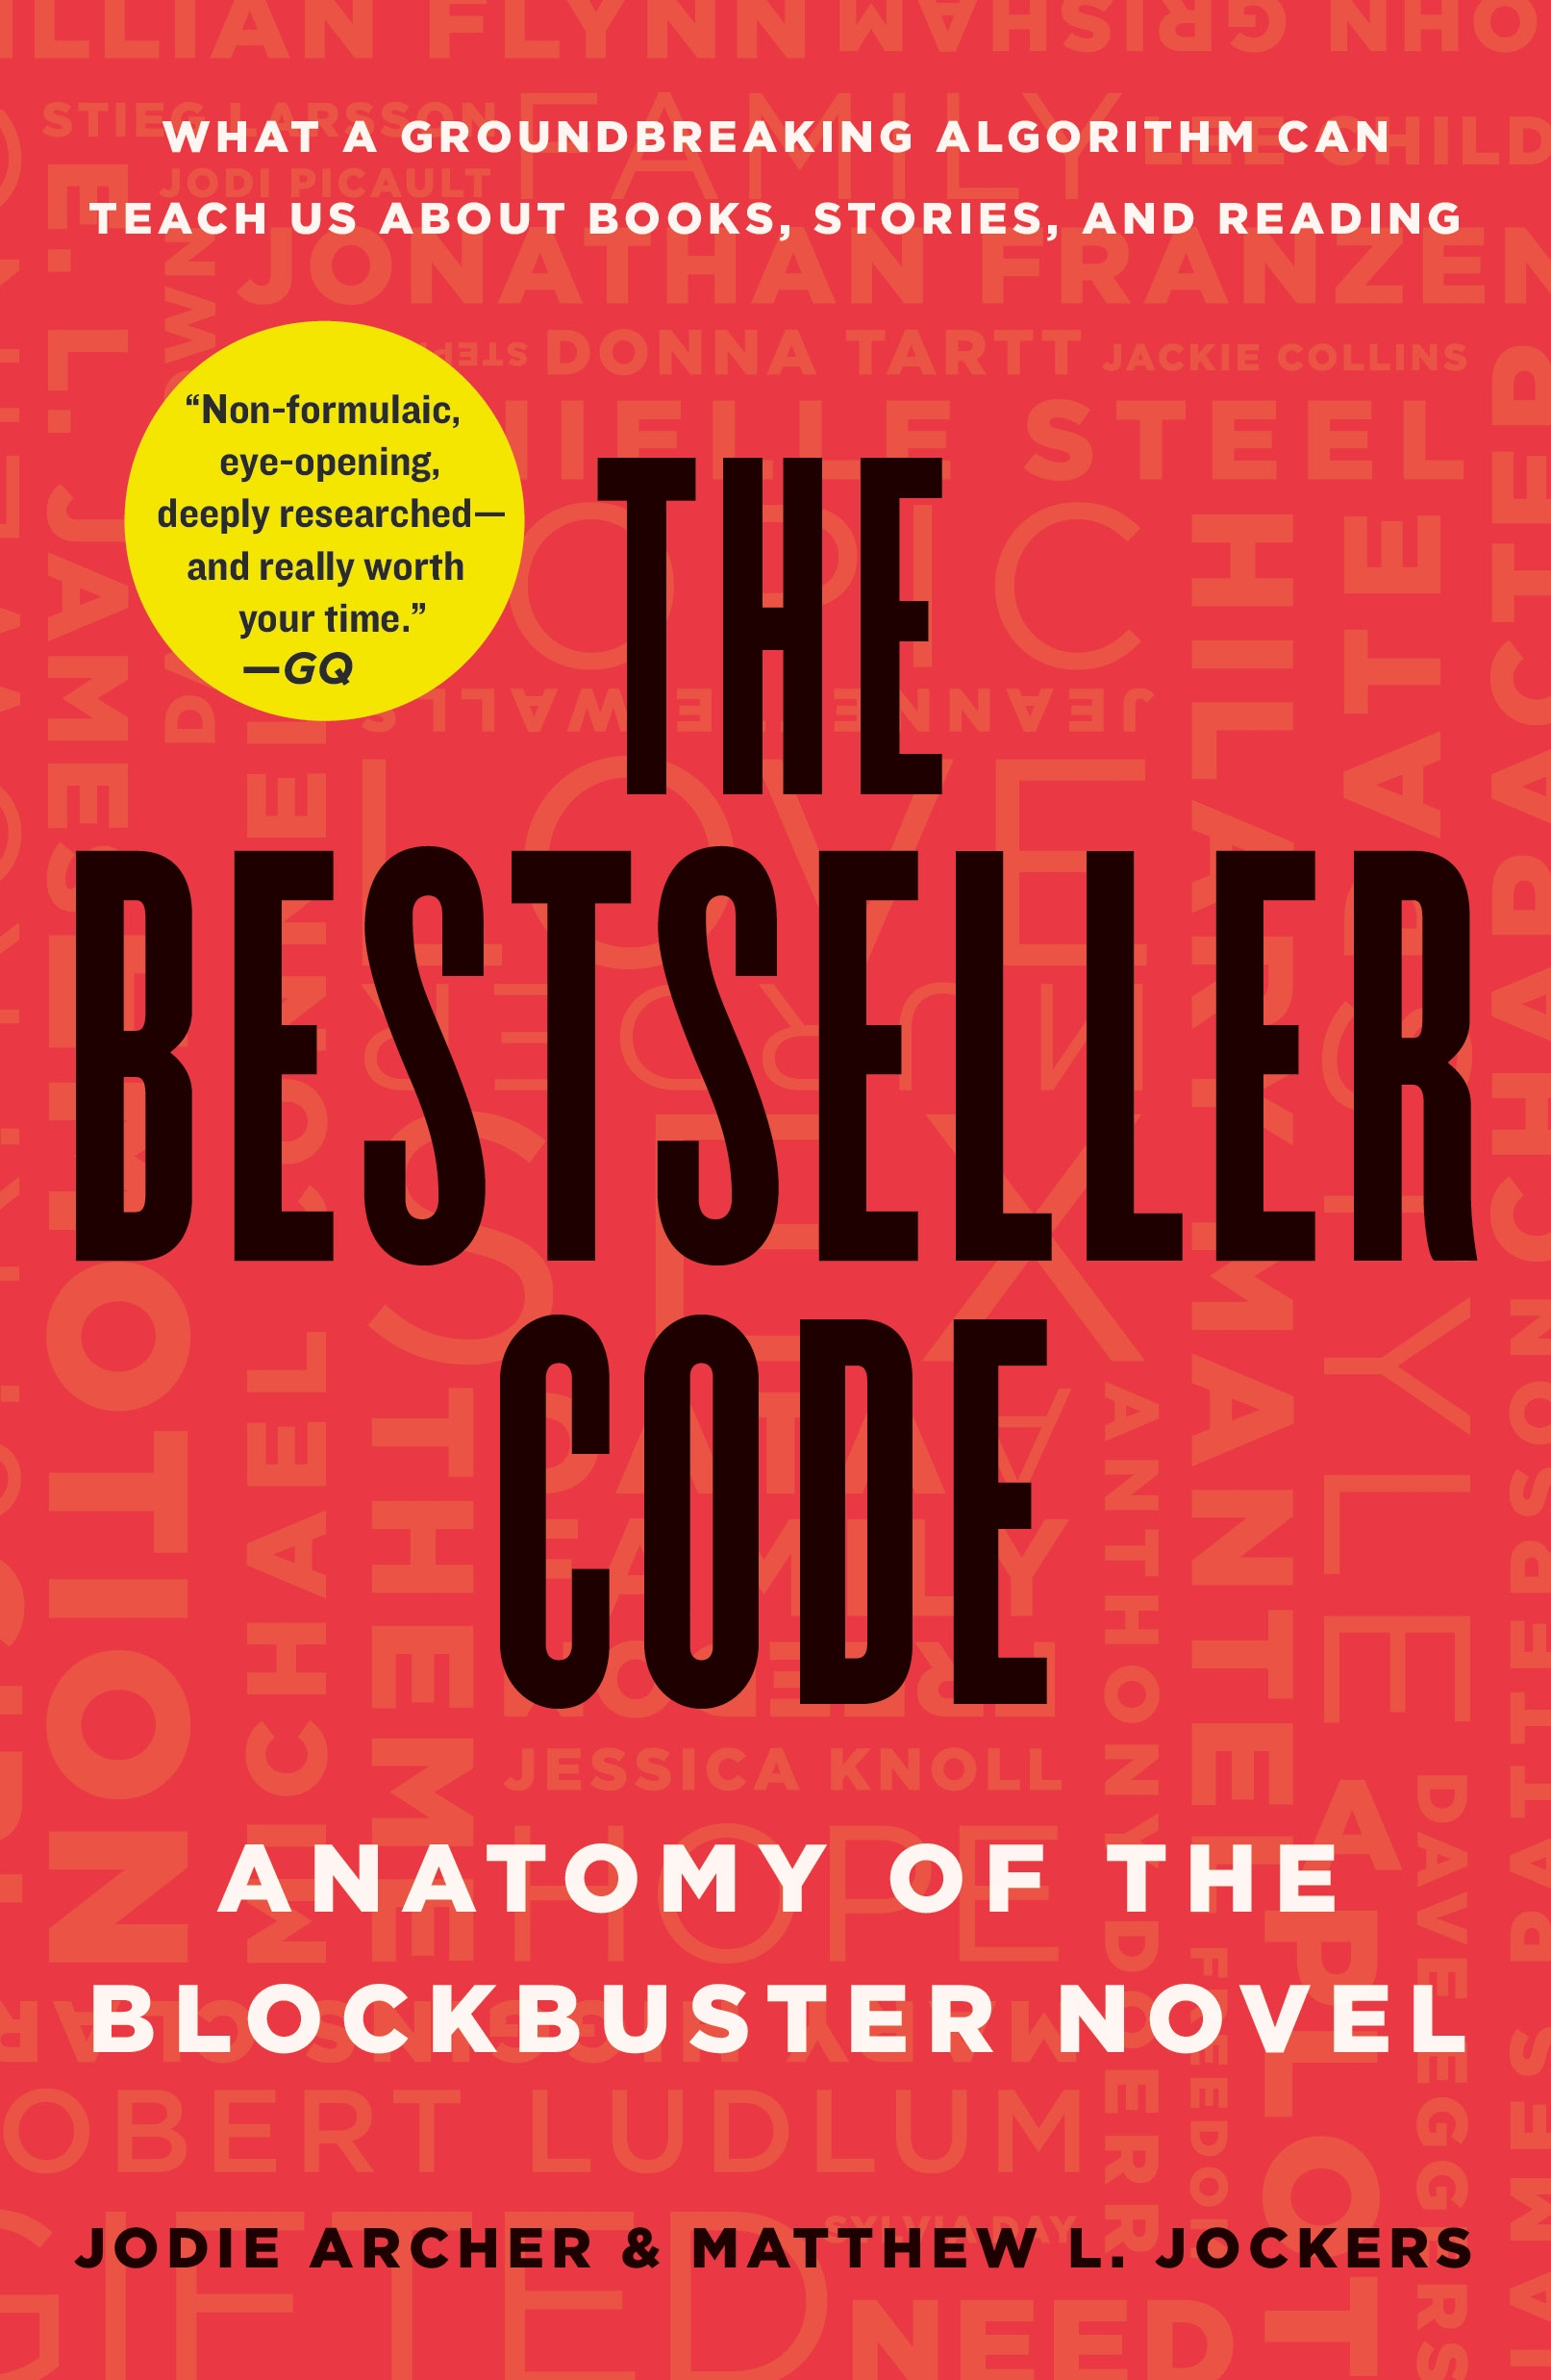 The Bestseller Code Anatomy of the Blockbuster Novel